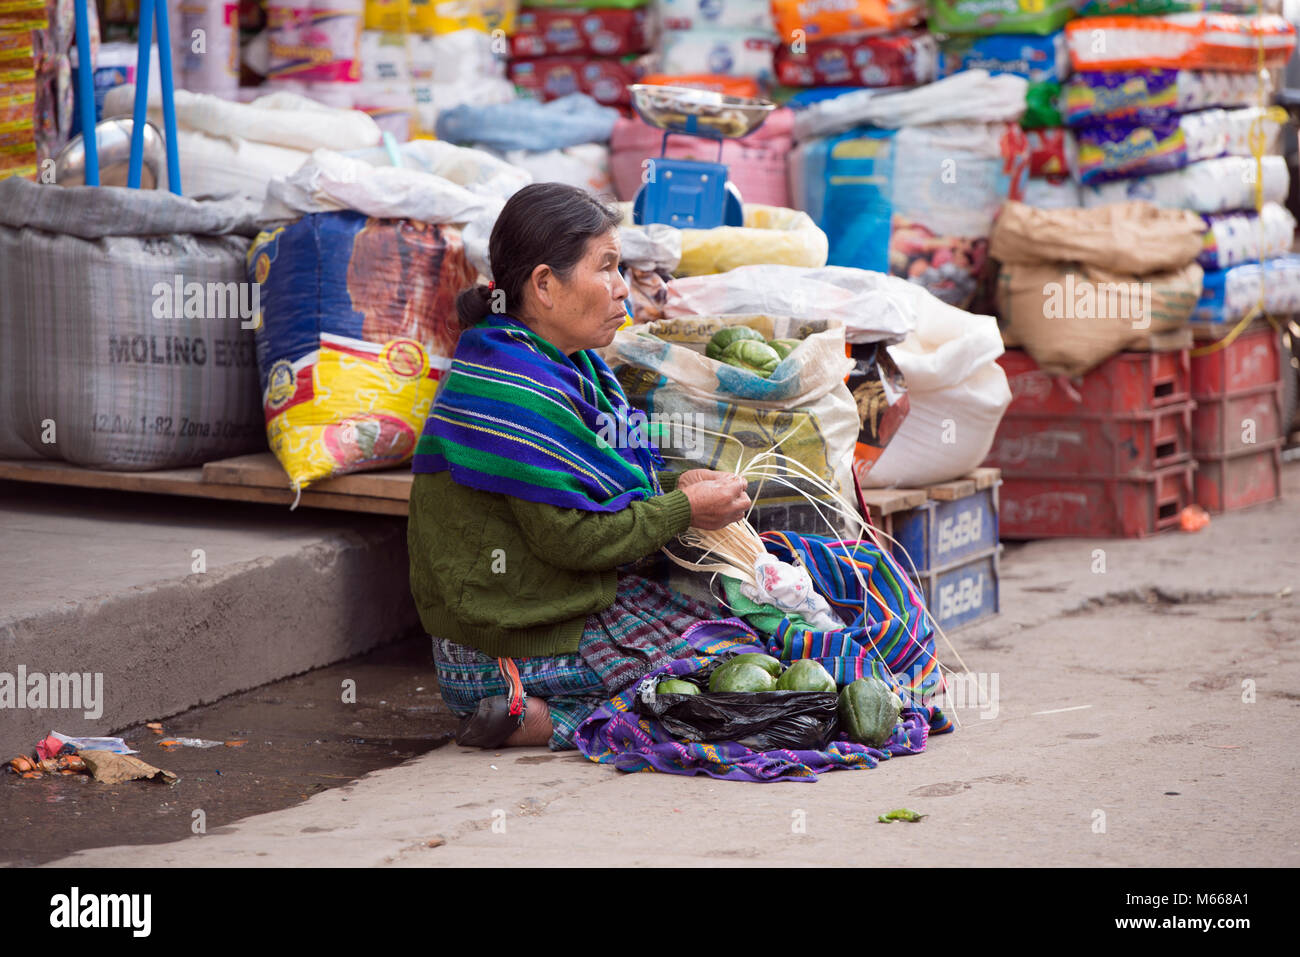 An ethnic, indigenous K'iche' (Quiché) Maya woman in traditional dress at the market. Santa Cruz del - Stock Image